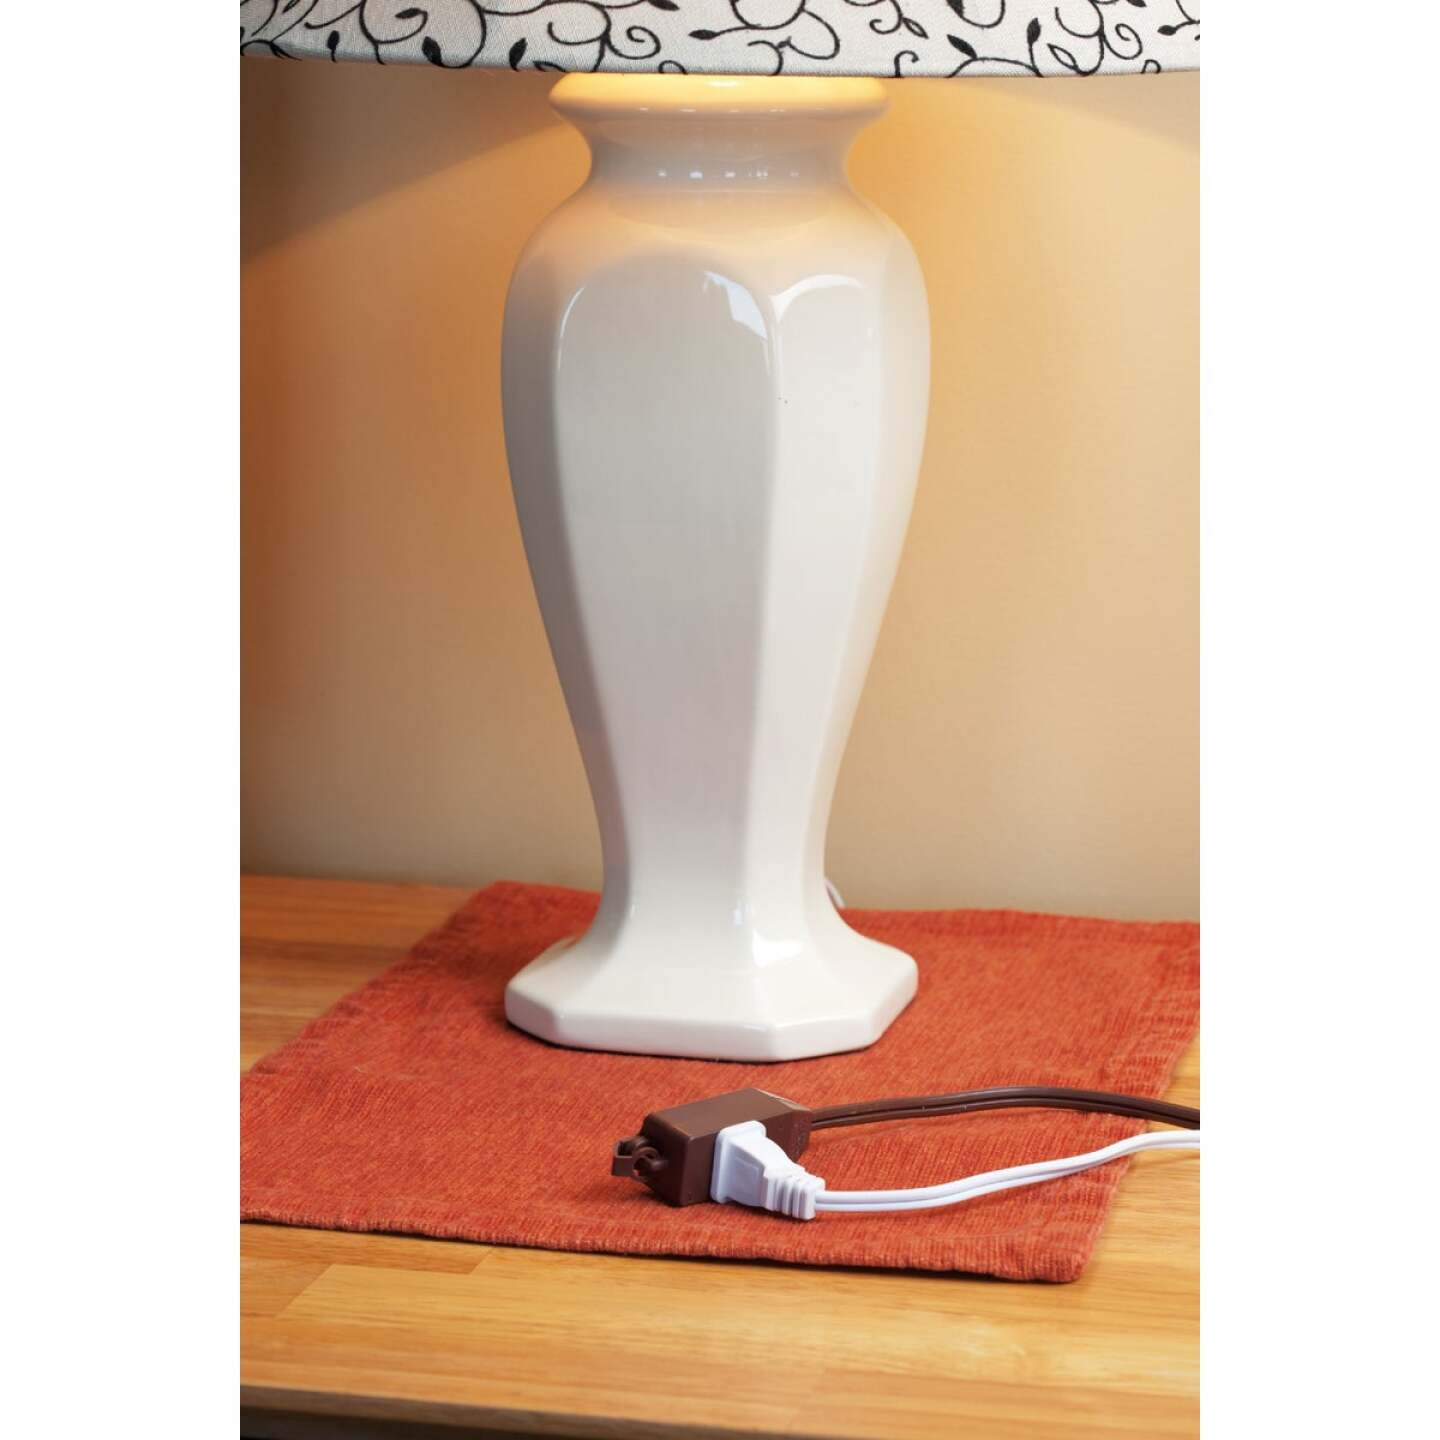 Do it Best 9 Ft. 16/2 Brown Cube Tap Extension Cord Image 3